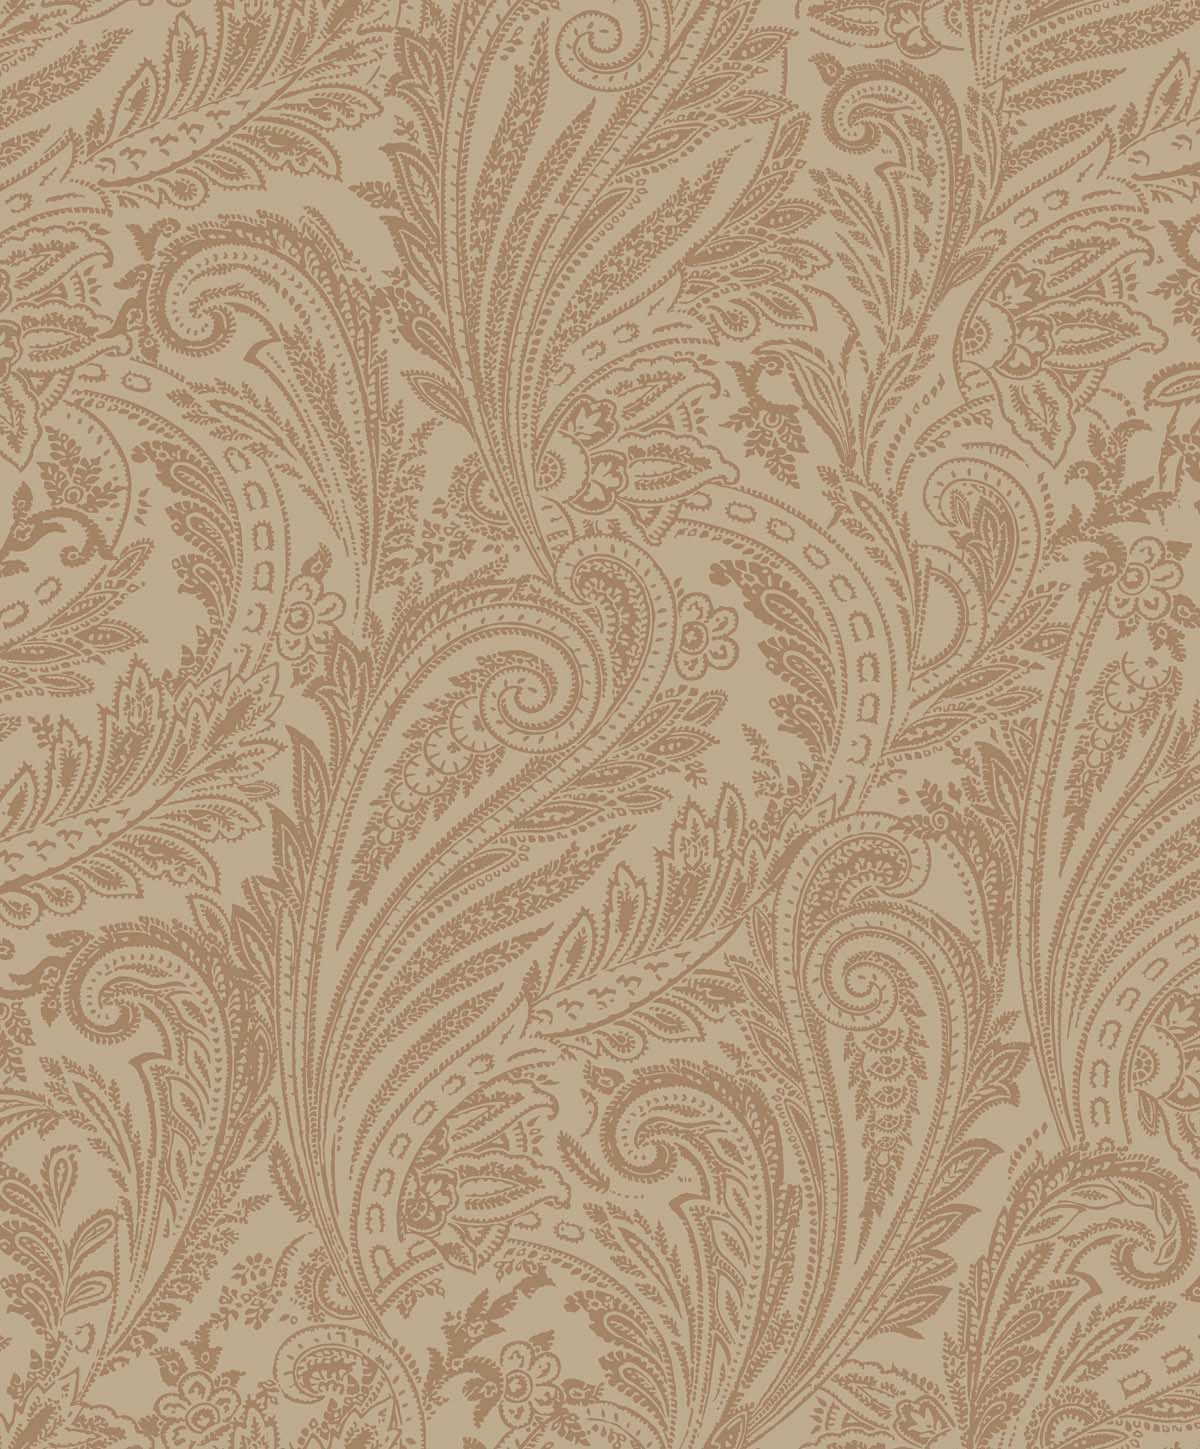 savile-row-wallpaper-paisley-SR00518